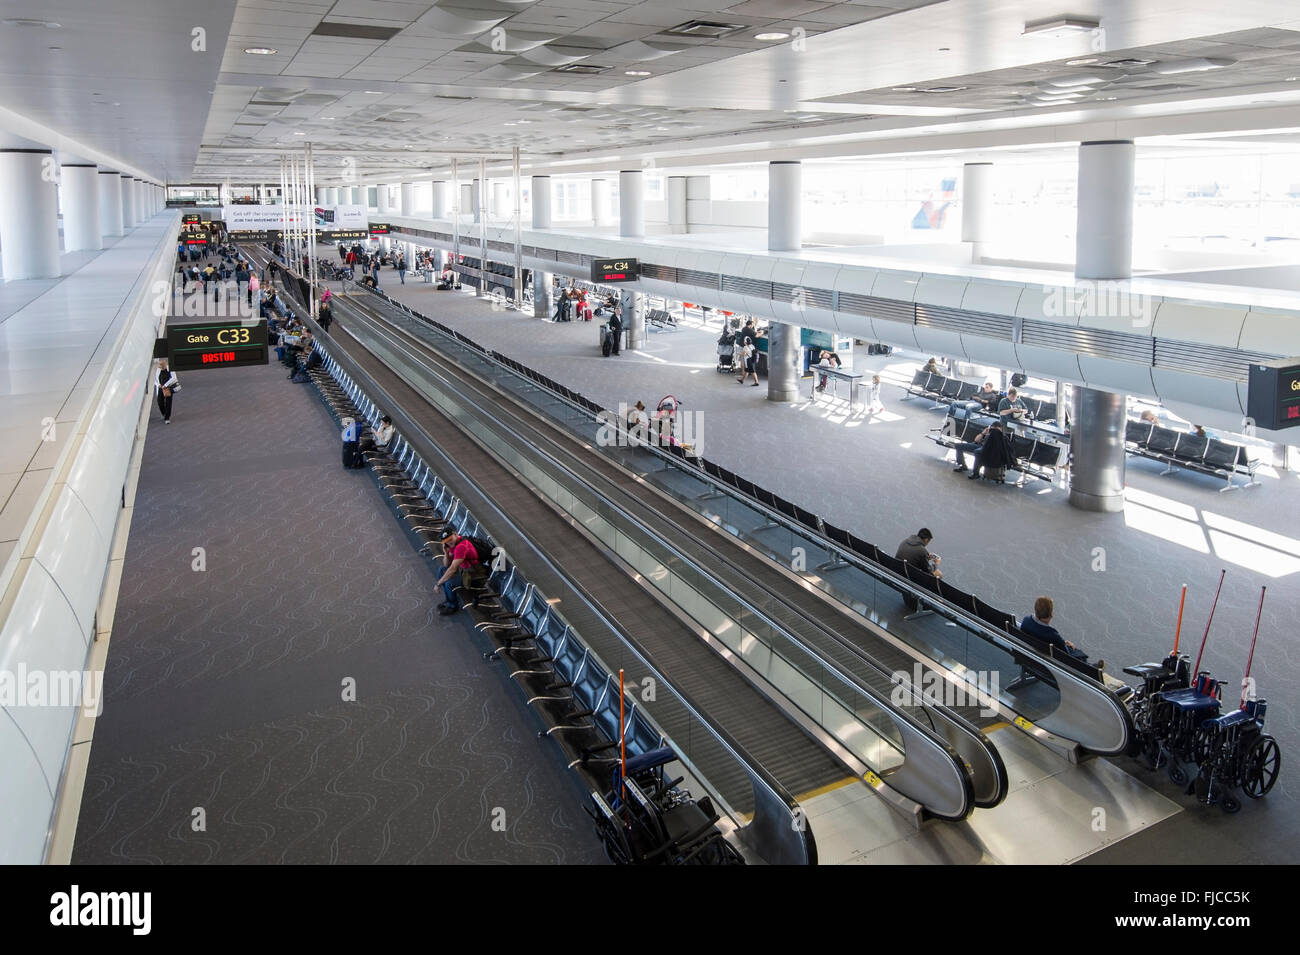 Trottoir roulant, l'aéroport de Denver, États-Unis Photo Stock